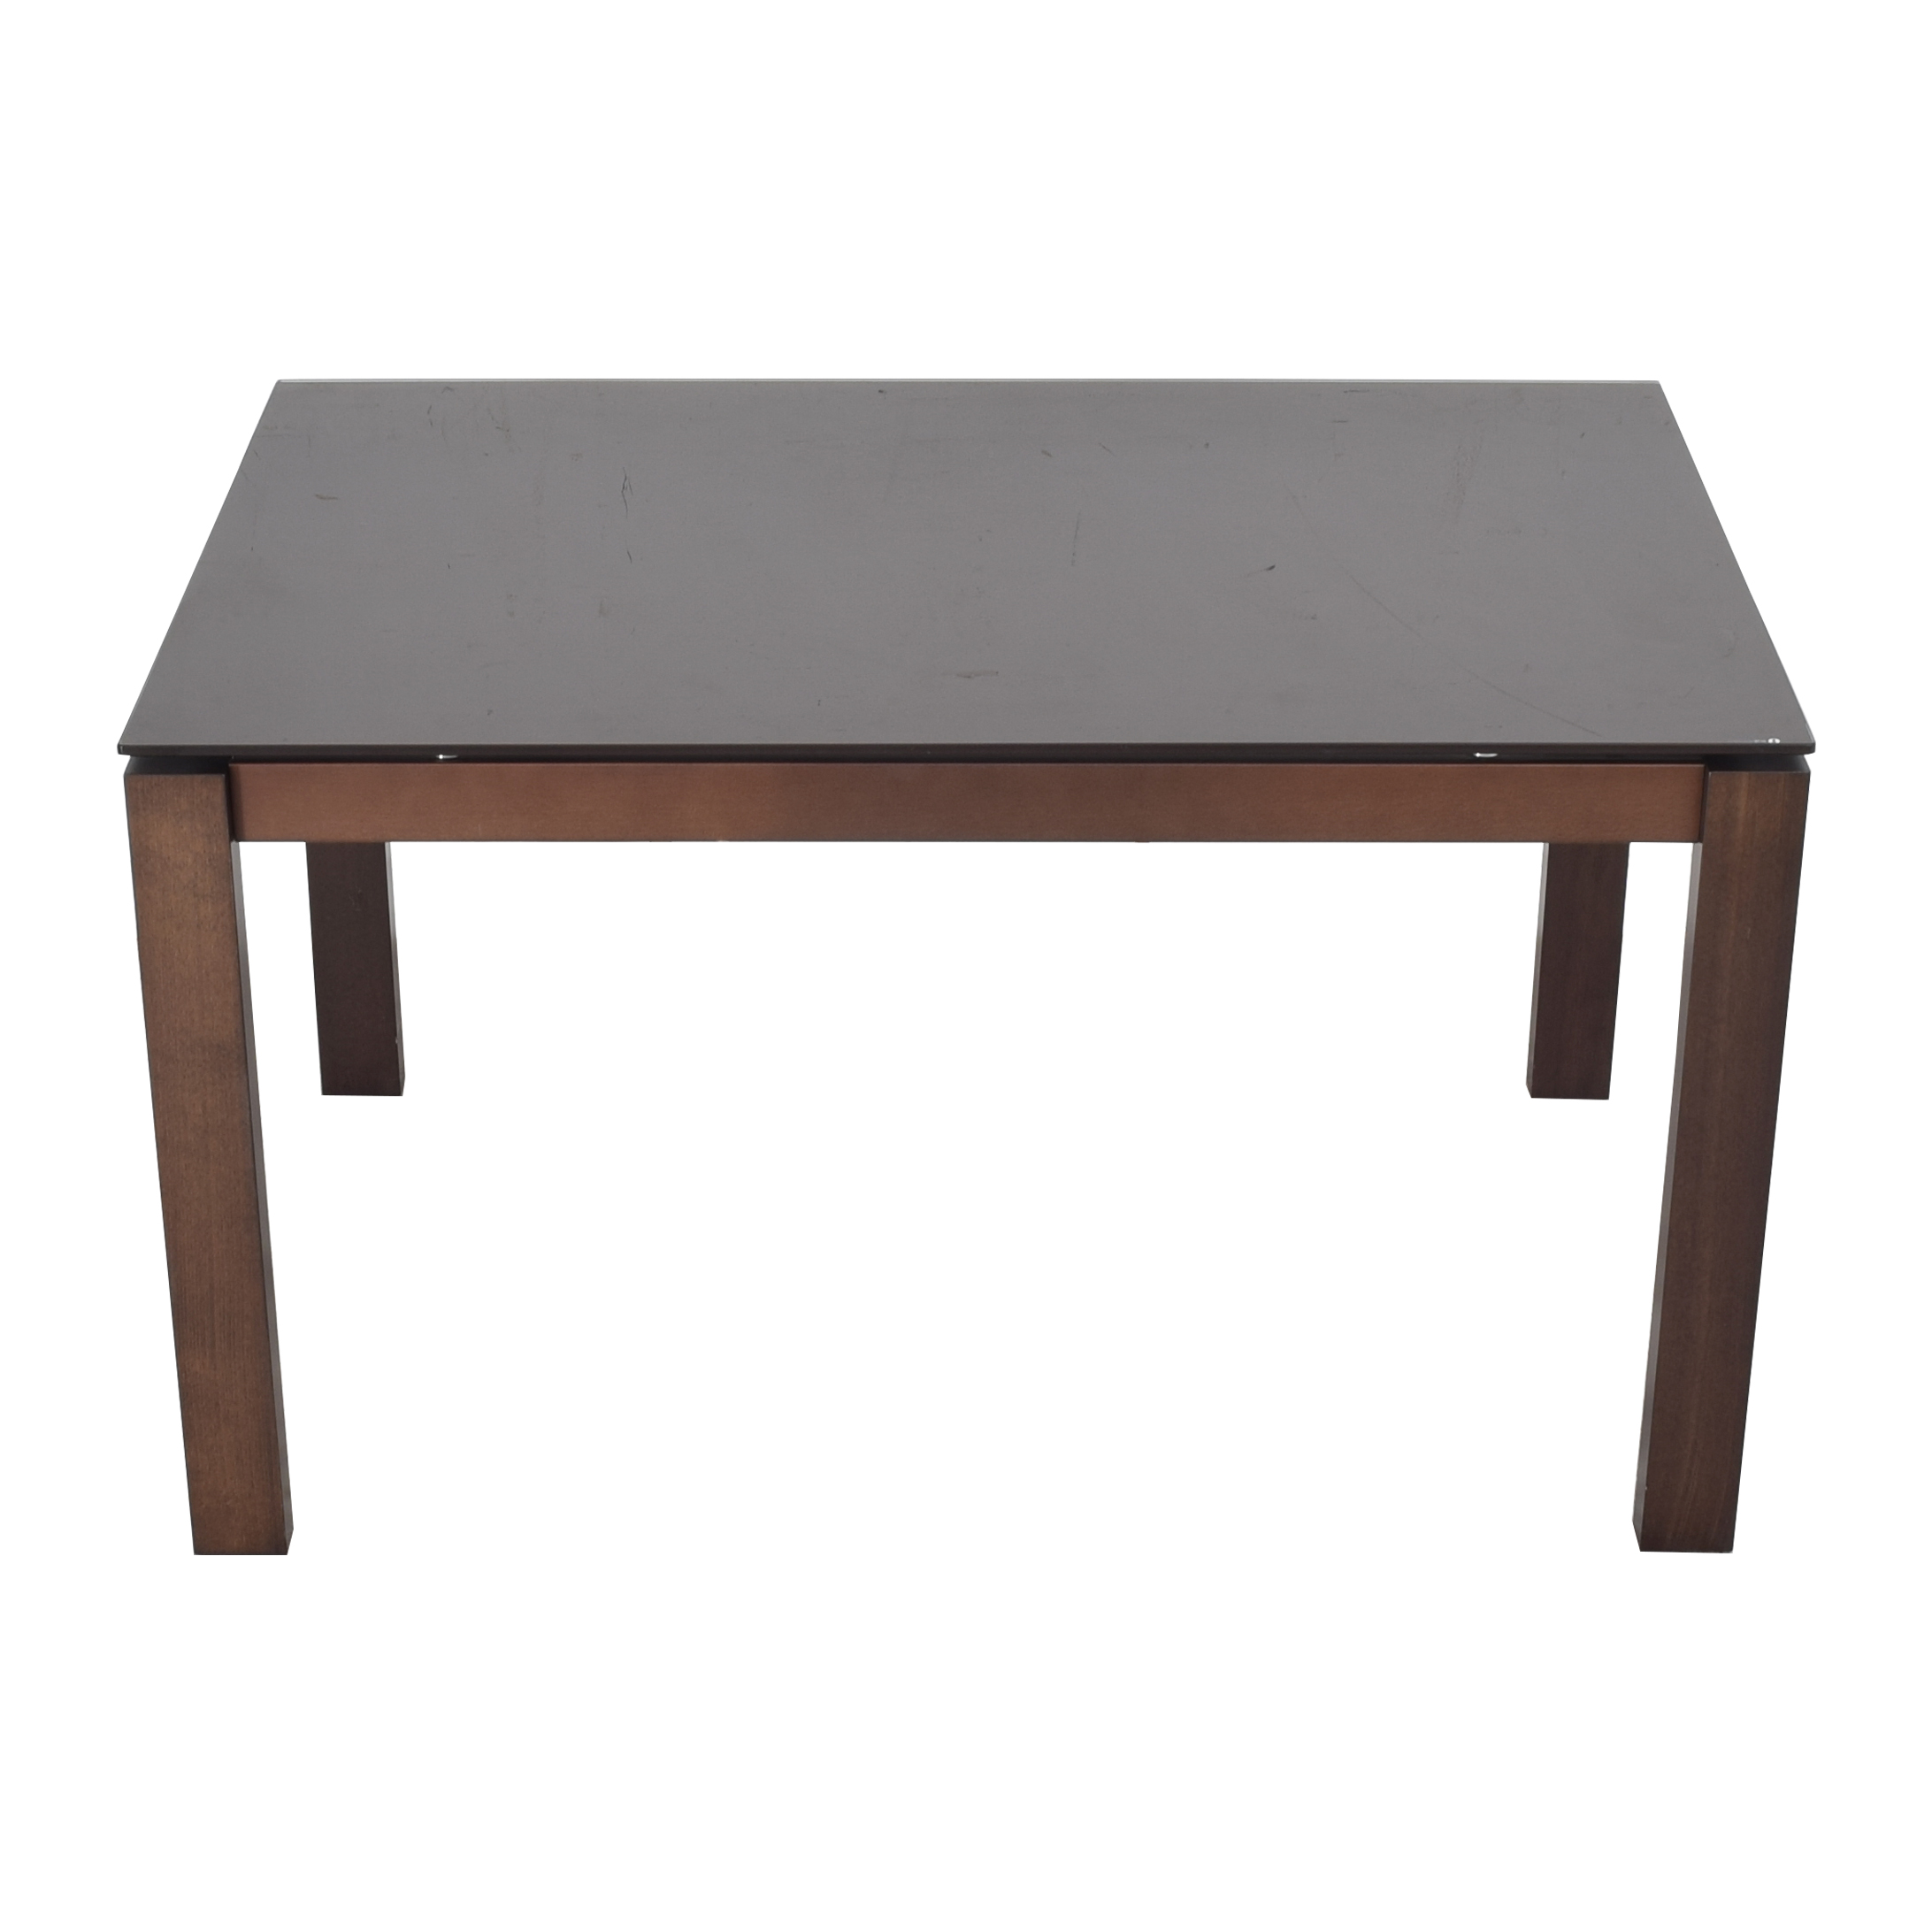 Calligaris Calligaris Extending Dining Table nyc